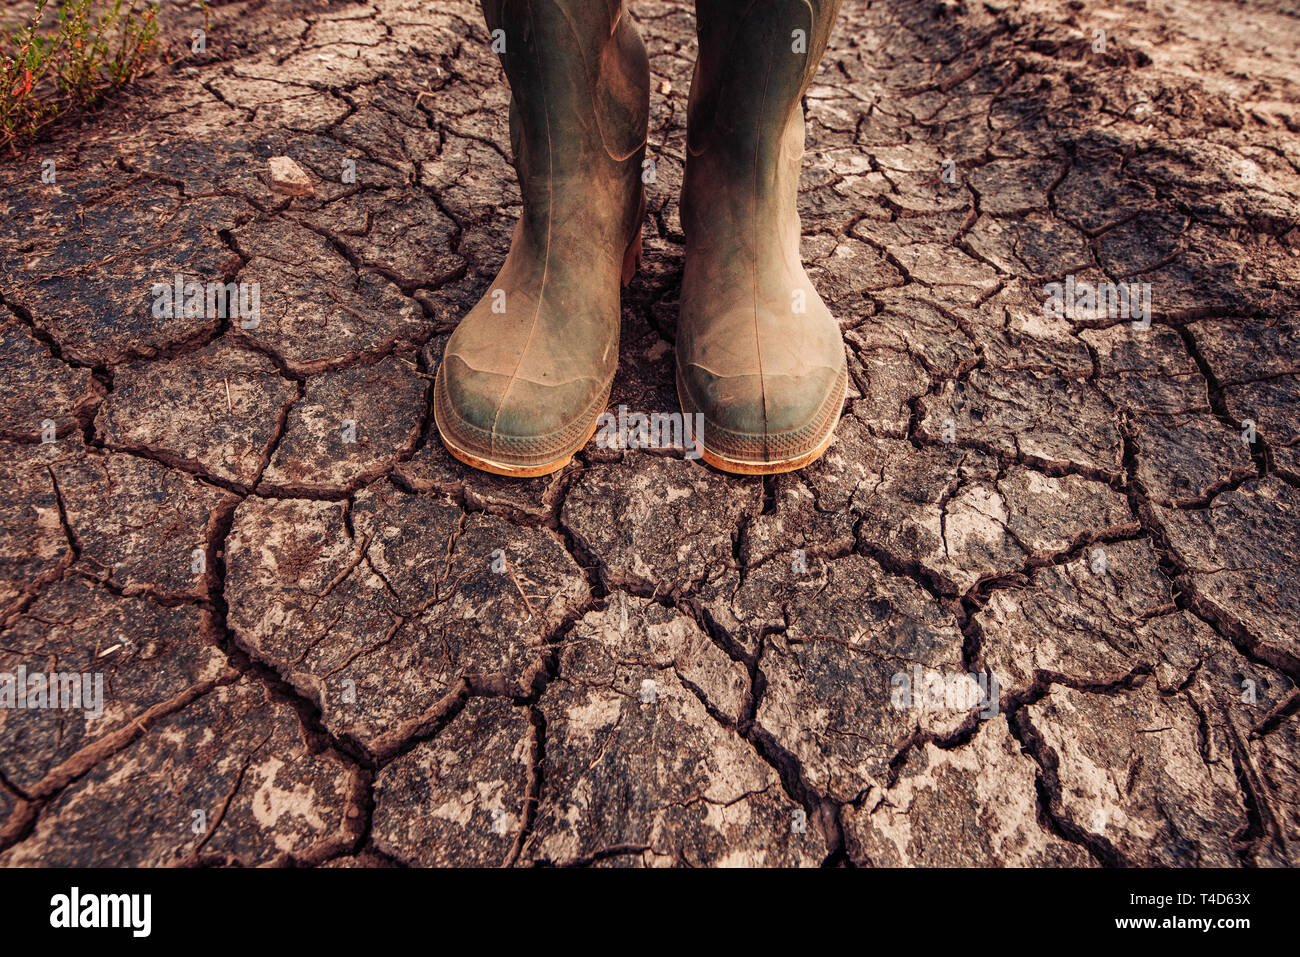 Farmer in rubber boots standing on dry soil ground, global warming and climate change is impacting crops growing and yield Stock Photo